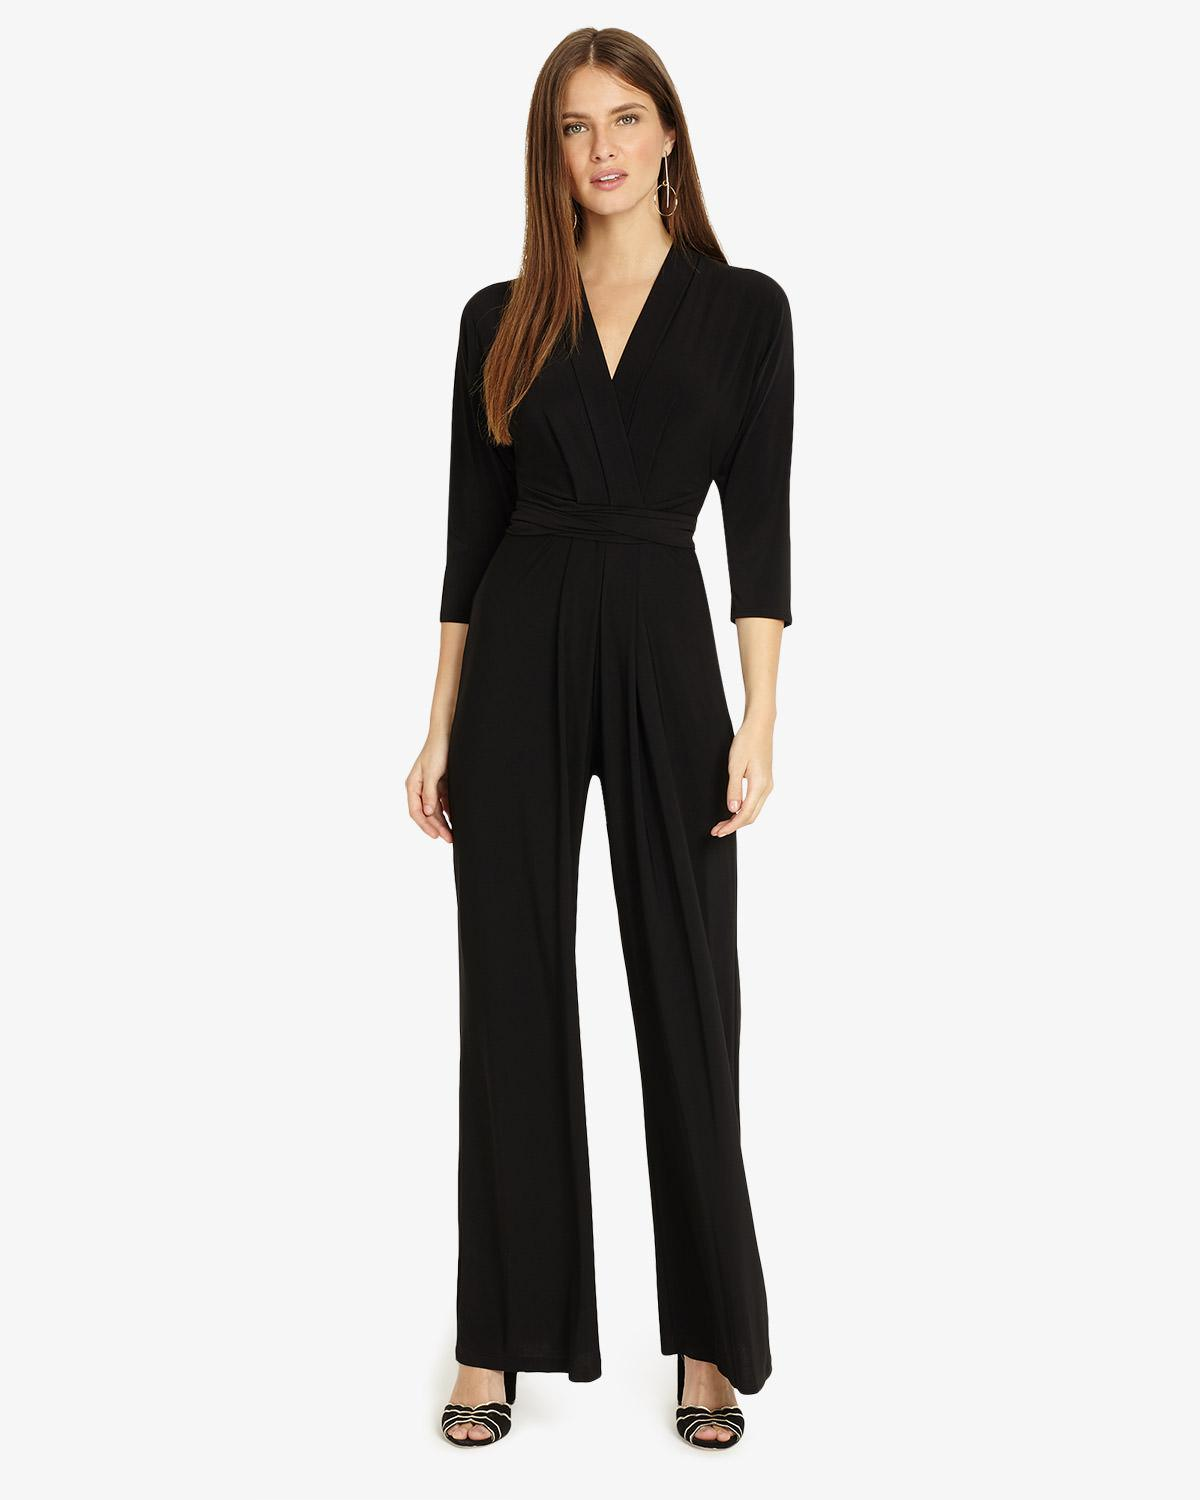 44c0bd5928c Phase Eight Tia 3 4 Sleeve Jumpsuit in Black - Lyst